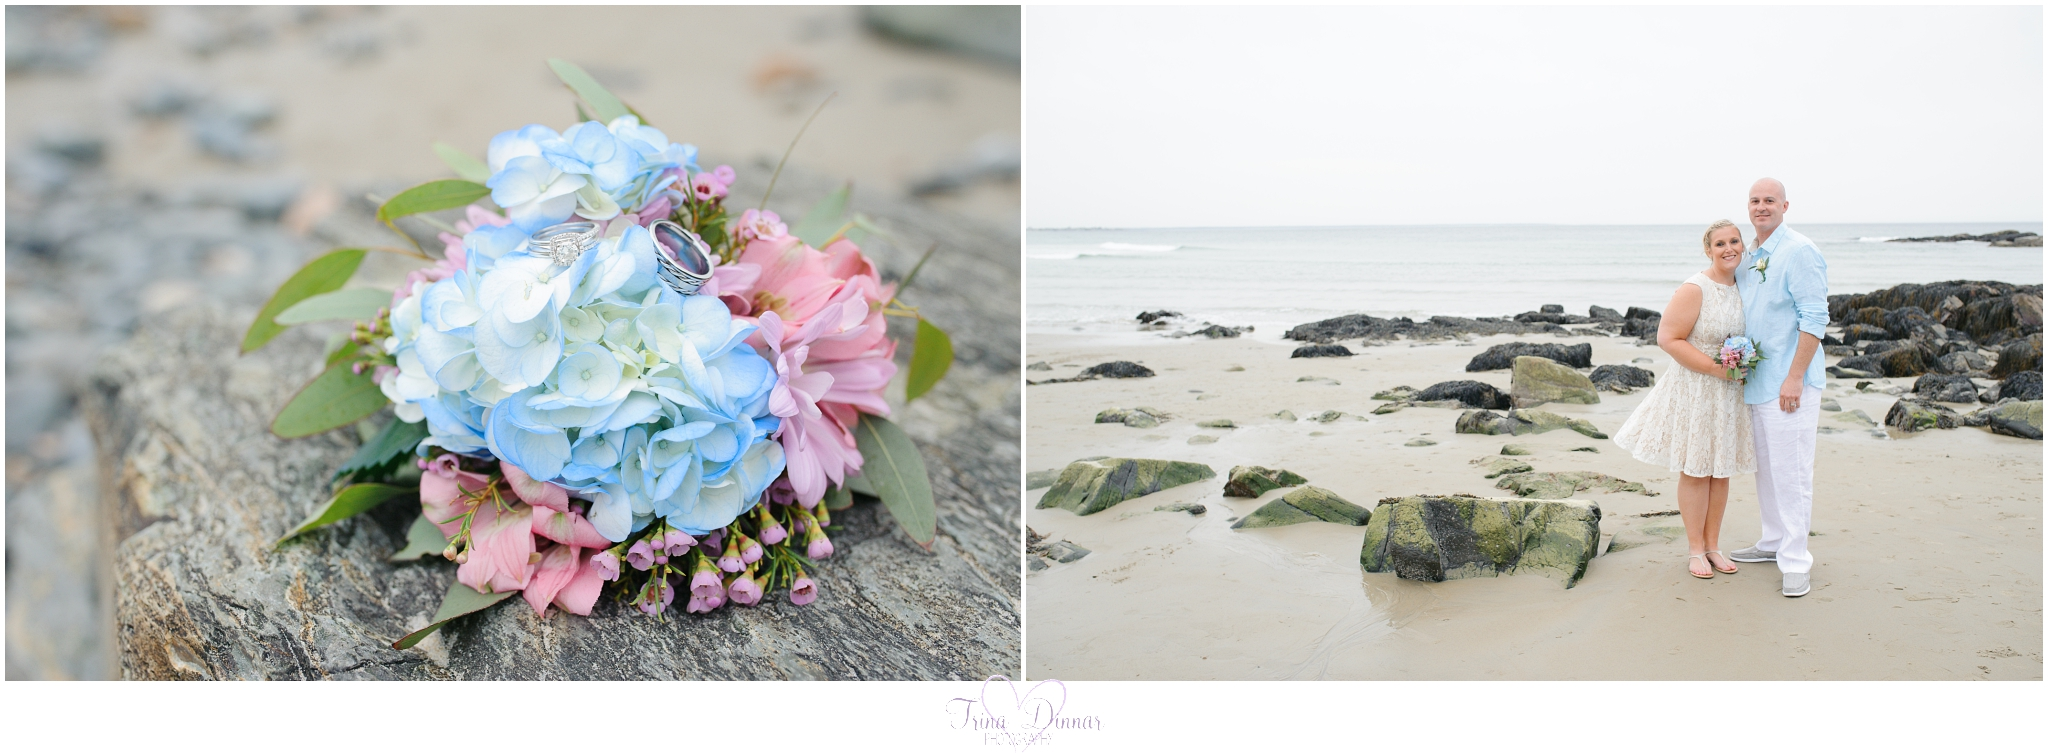 Beach wedding in Southern Maine photographed by Trina Dinnar Photography.